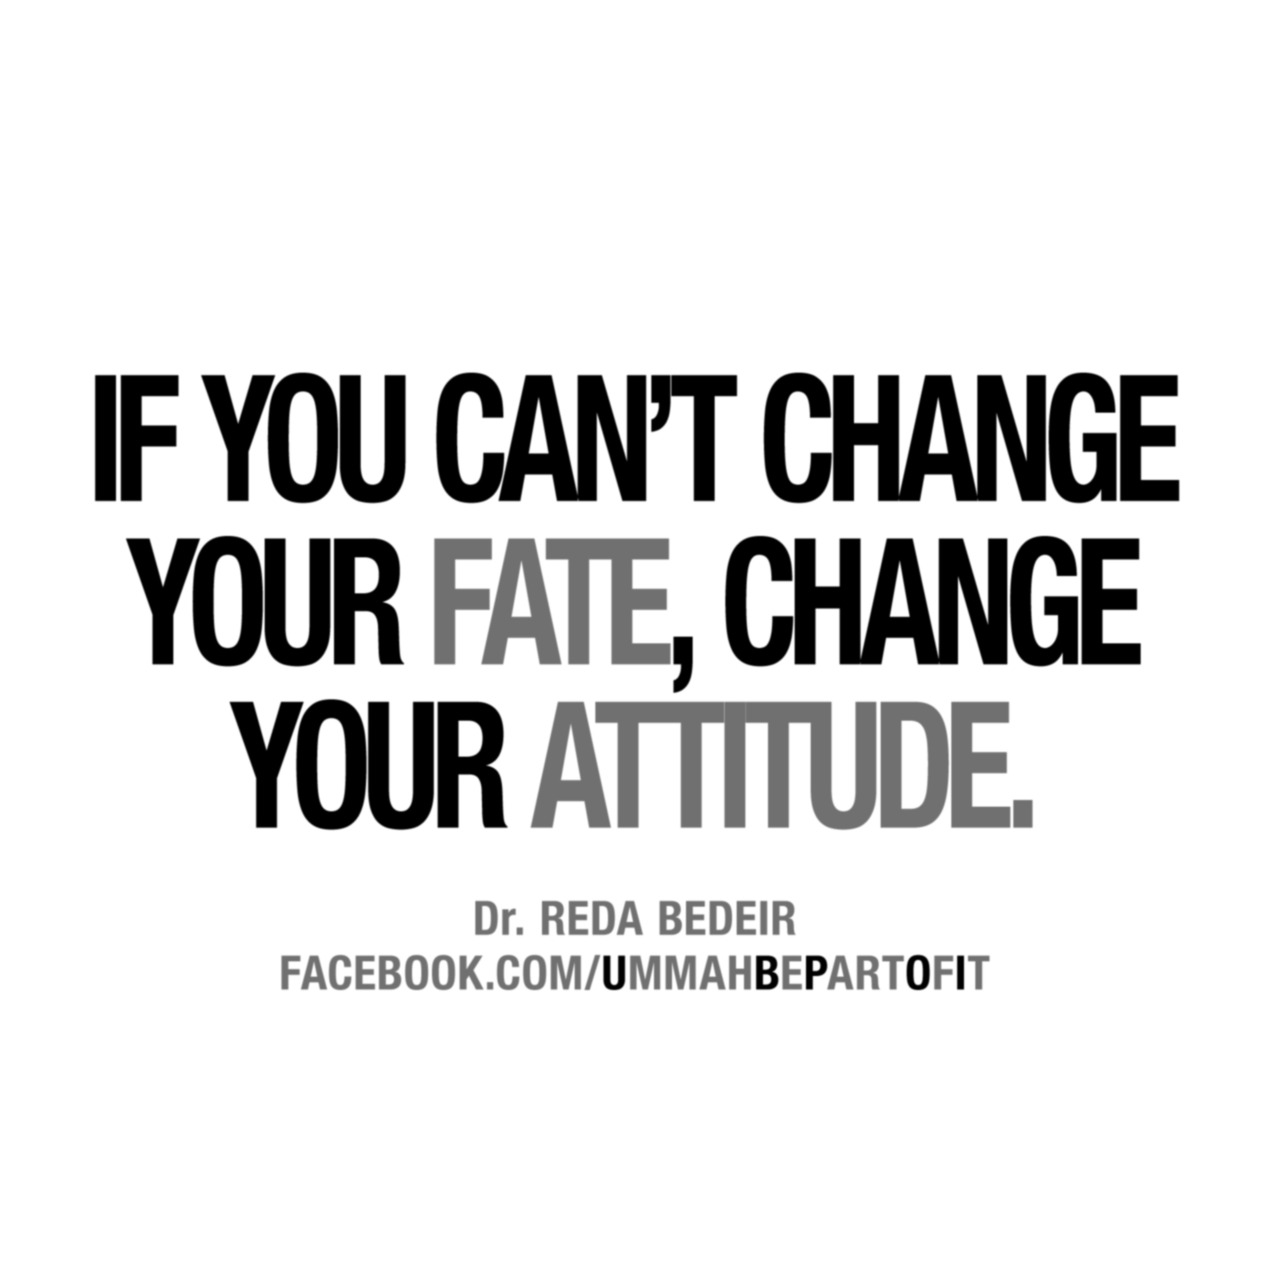 Change Your Attitude Quotes: 50 Best Attitude Quotes And Sayings